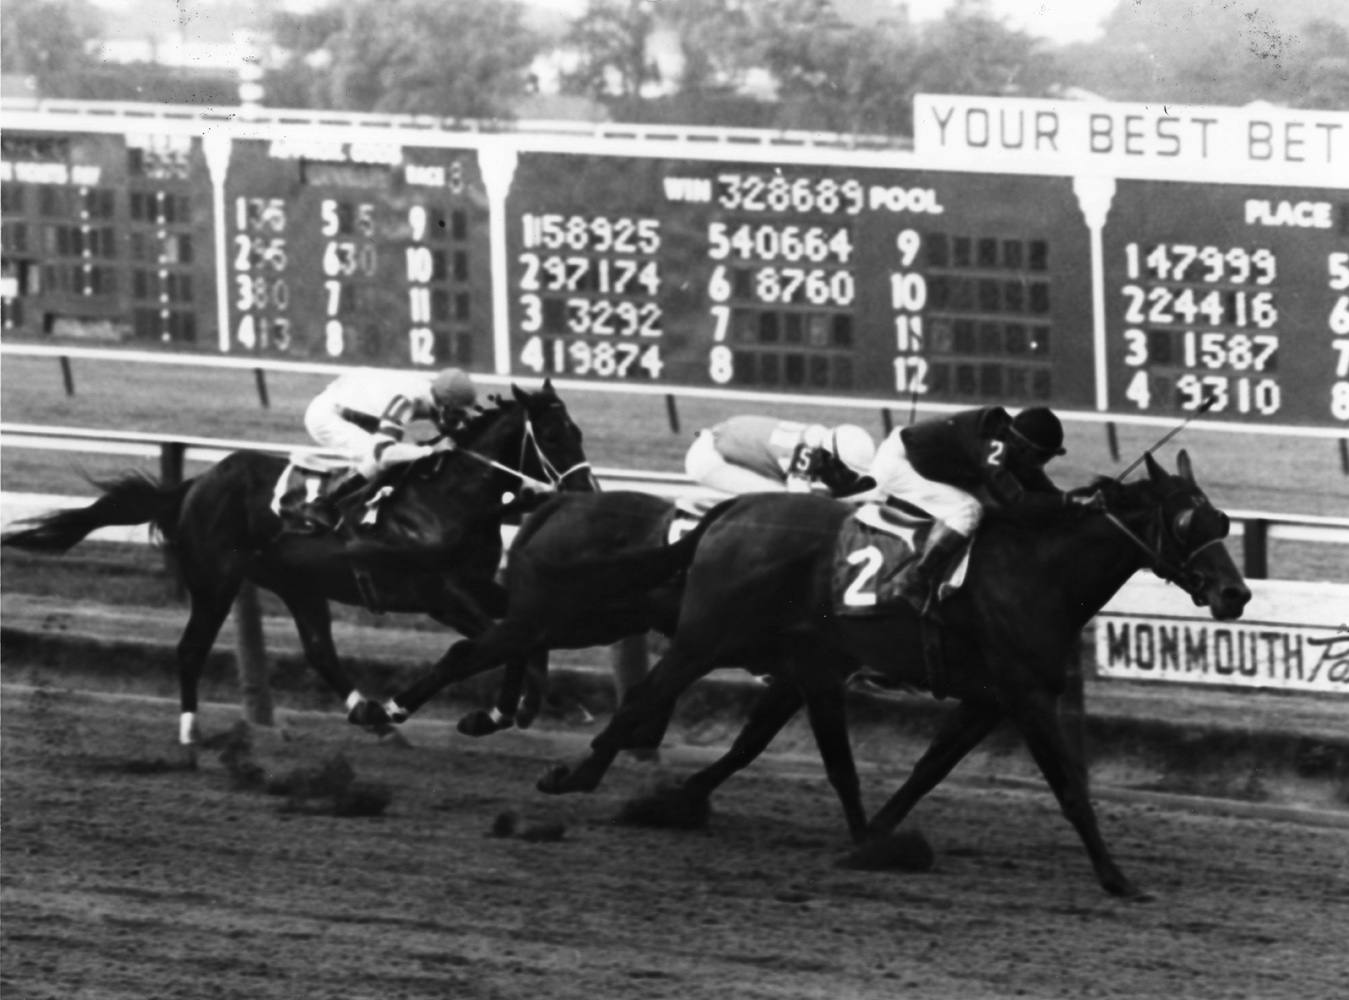 Buckpasser (Braulio Baeza up) winning the 1965 Sapling Stakes at Monmouth Park (Jim Raftery Turfotos/Museum Collection)